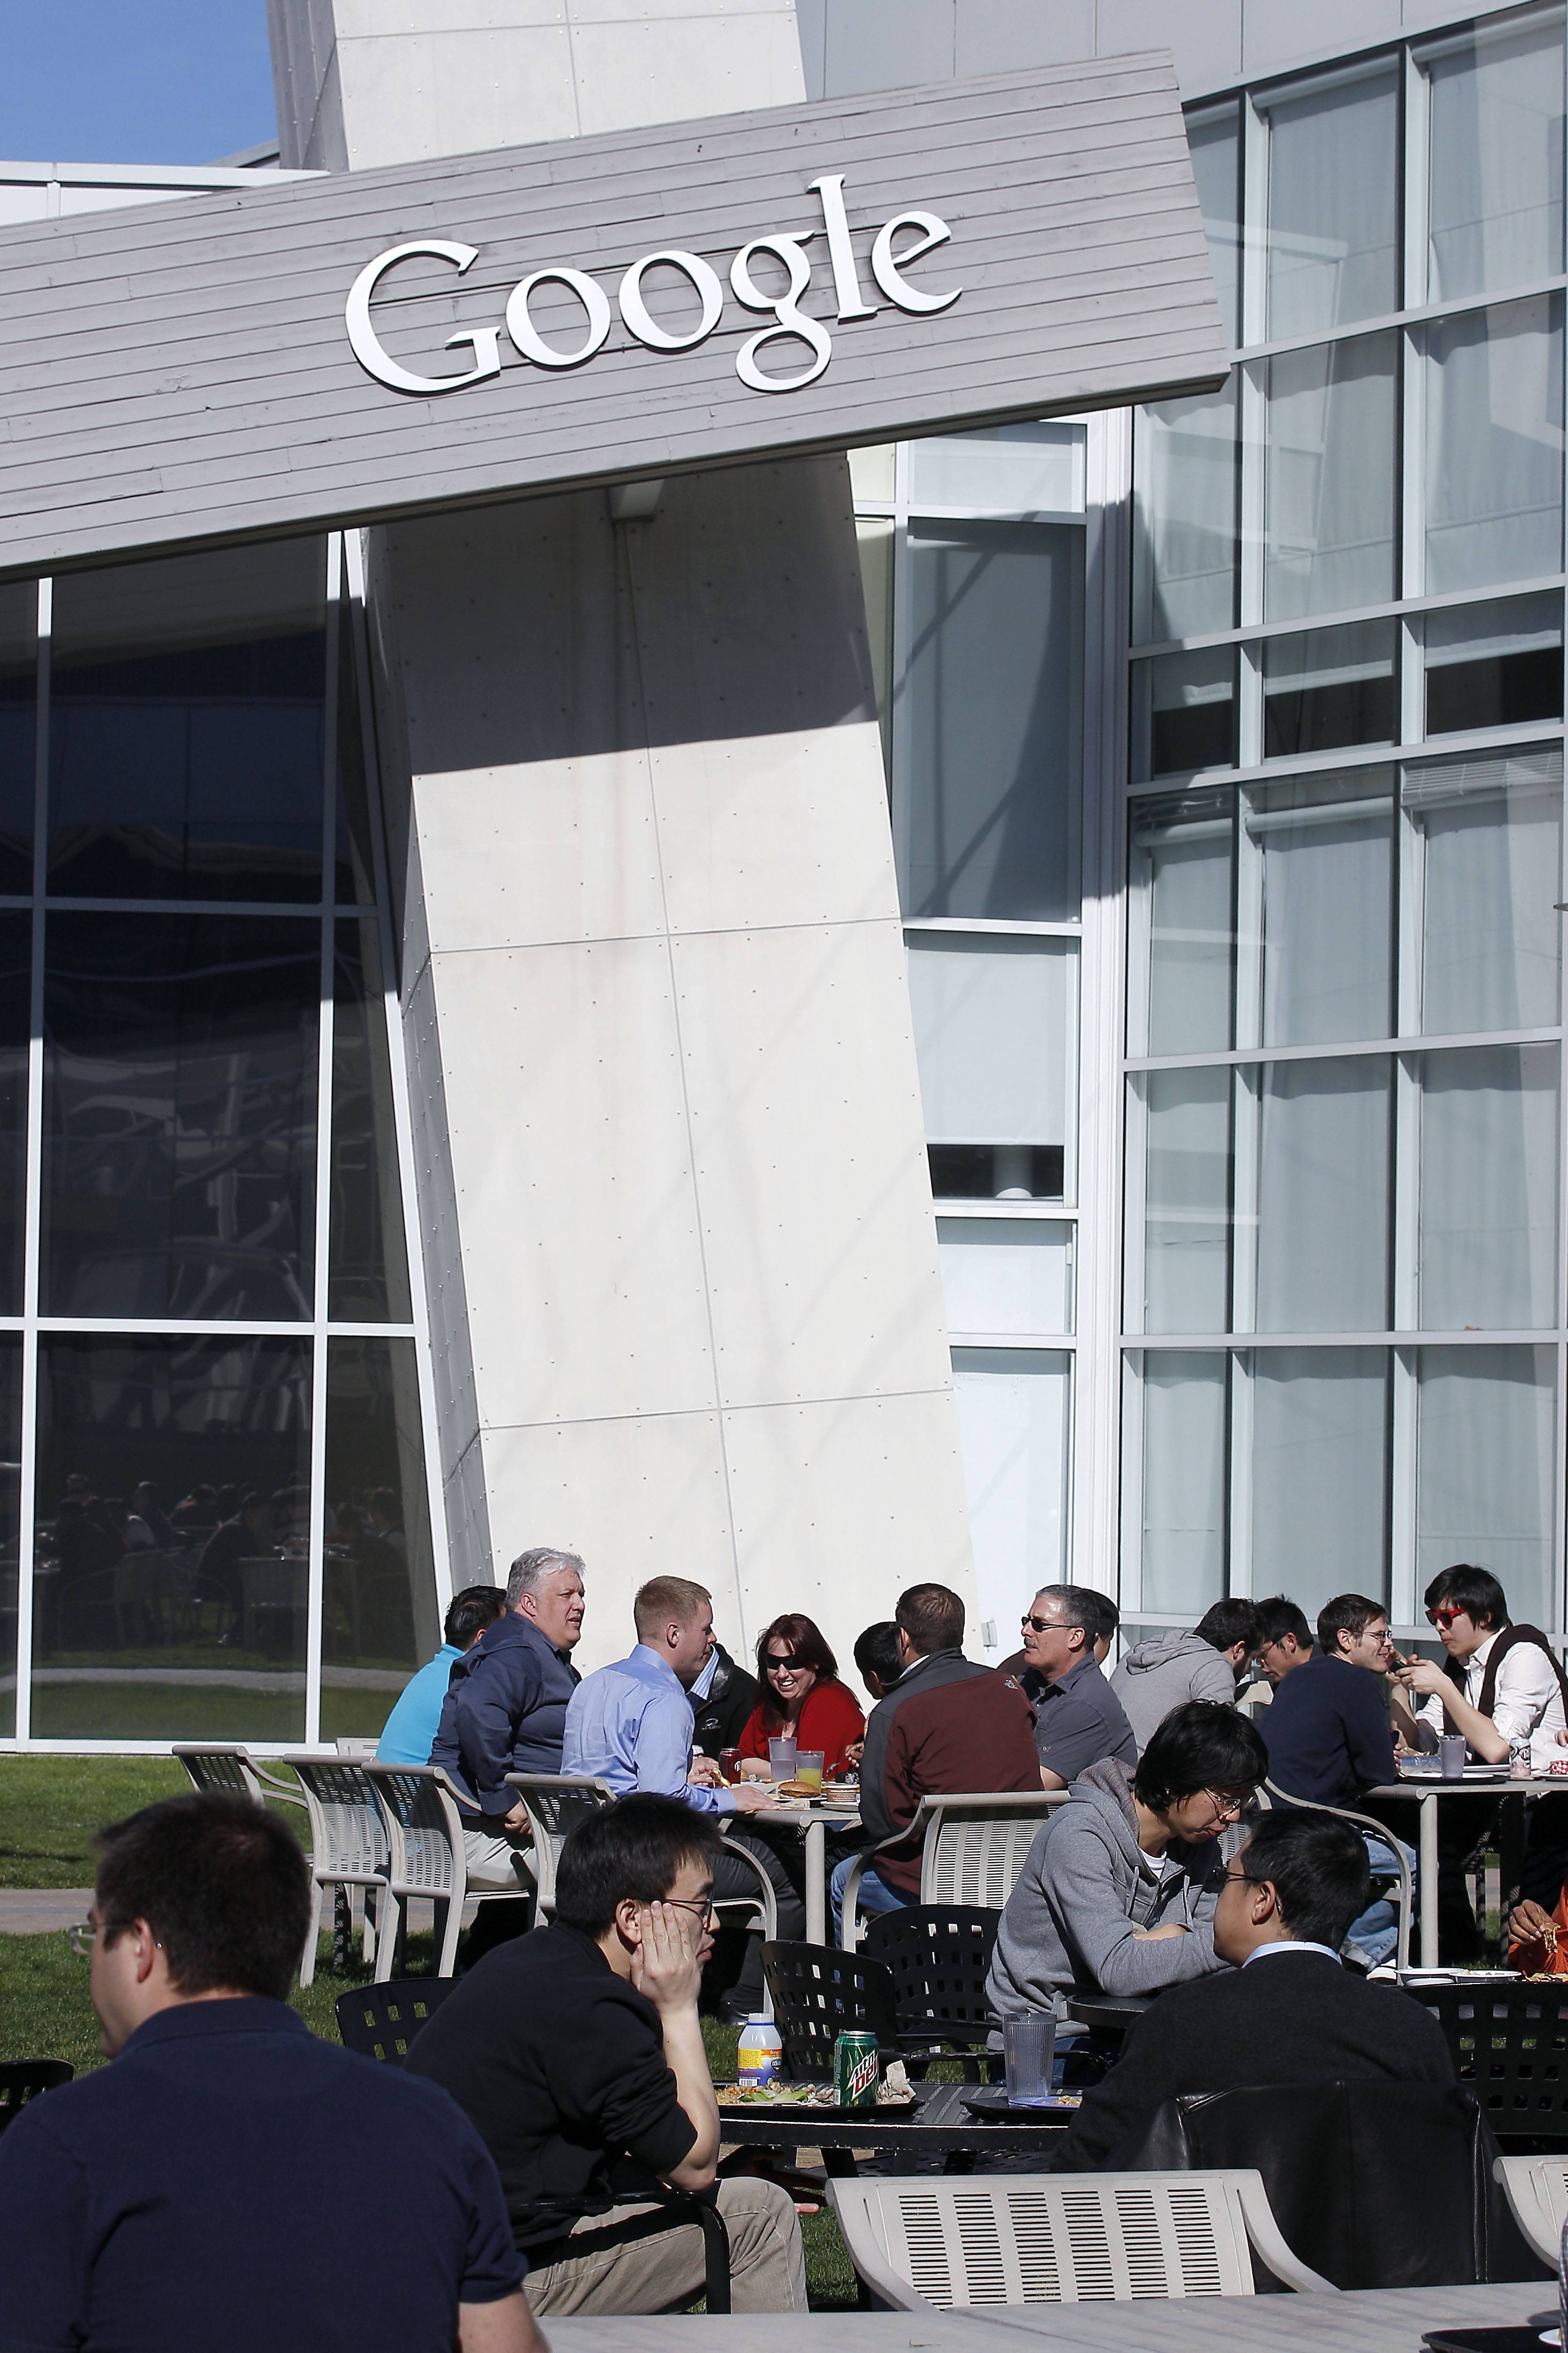 Google Inc. employees sit outside during lunch time at company's headquarters in Mountain View, California. In a groundbreaking disclosure, Google revealed Wednesday how very white and male its workforce is — just 2 percent of its 50,000 Googlers are black, 3 percent are Hispanic, and 30 percent are women.